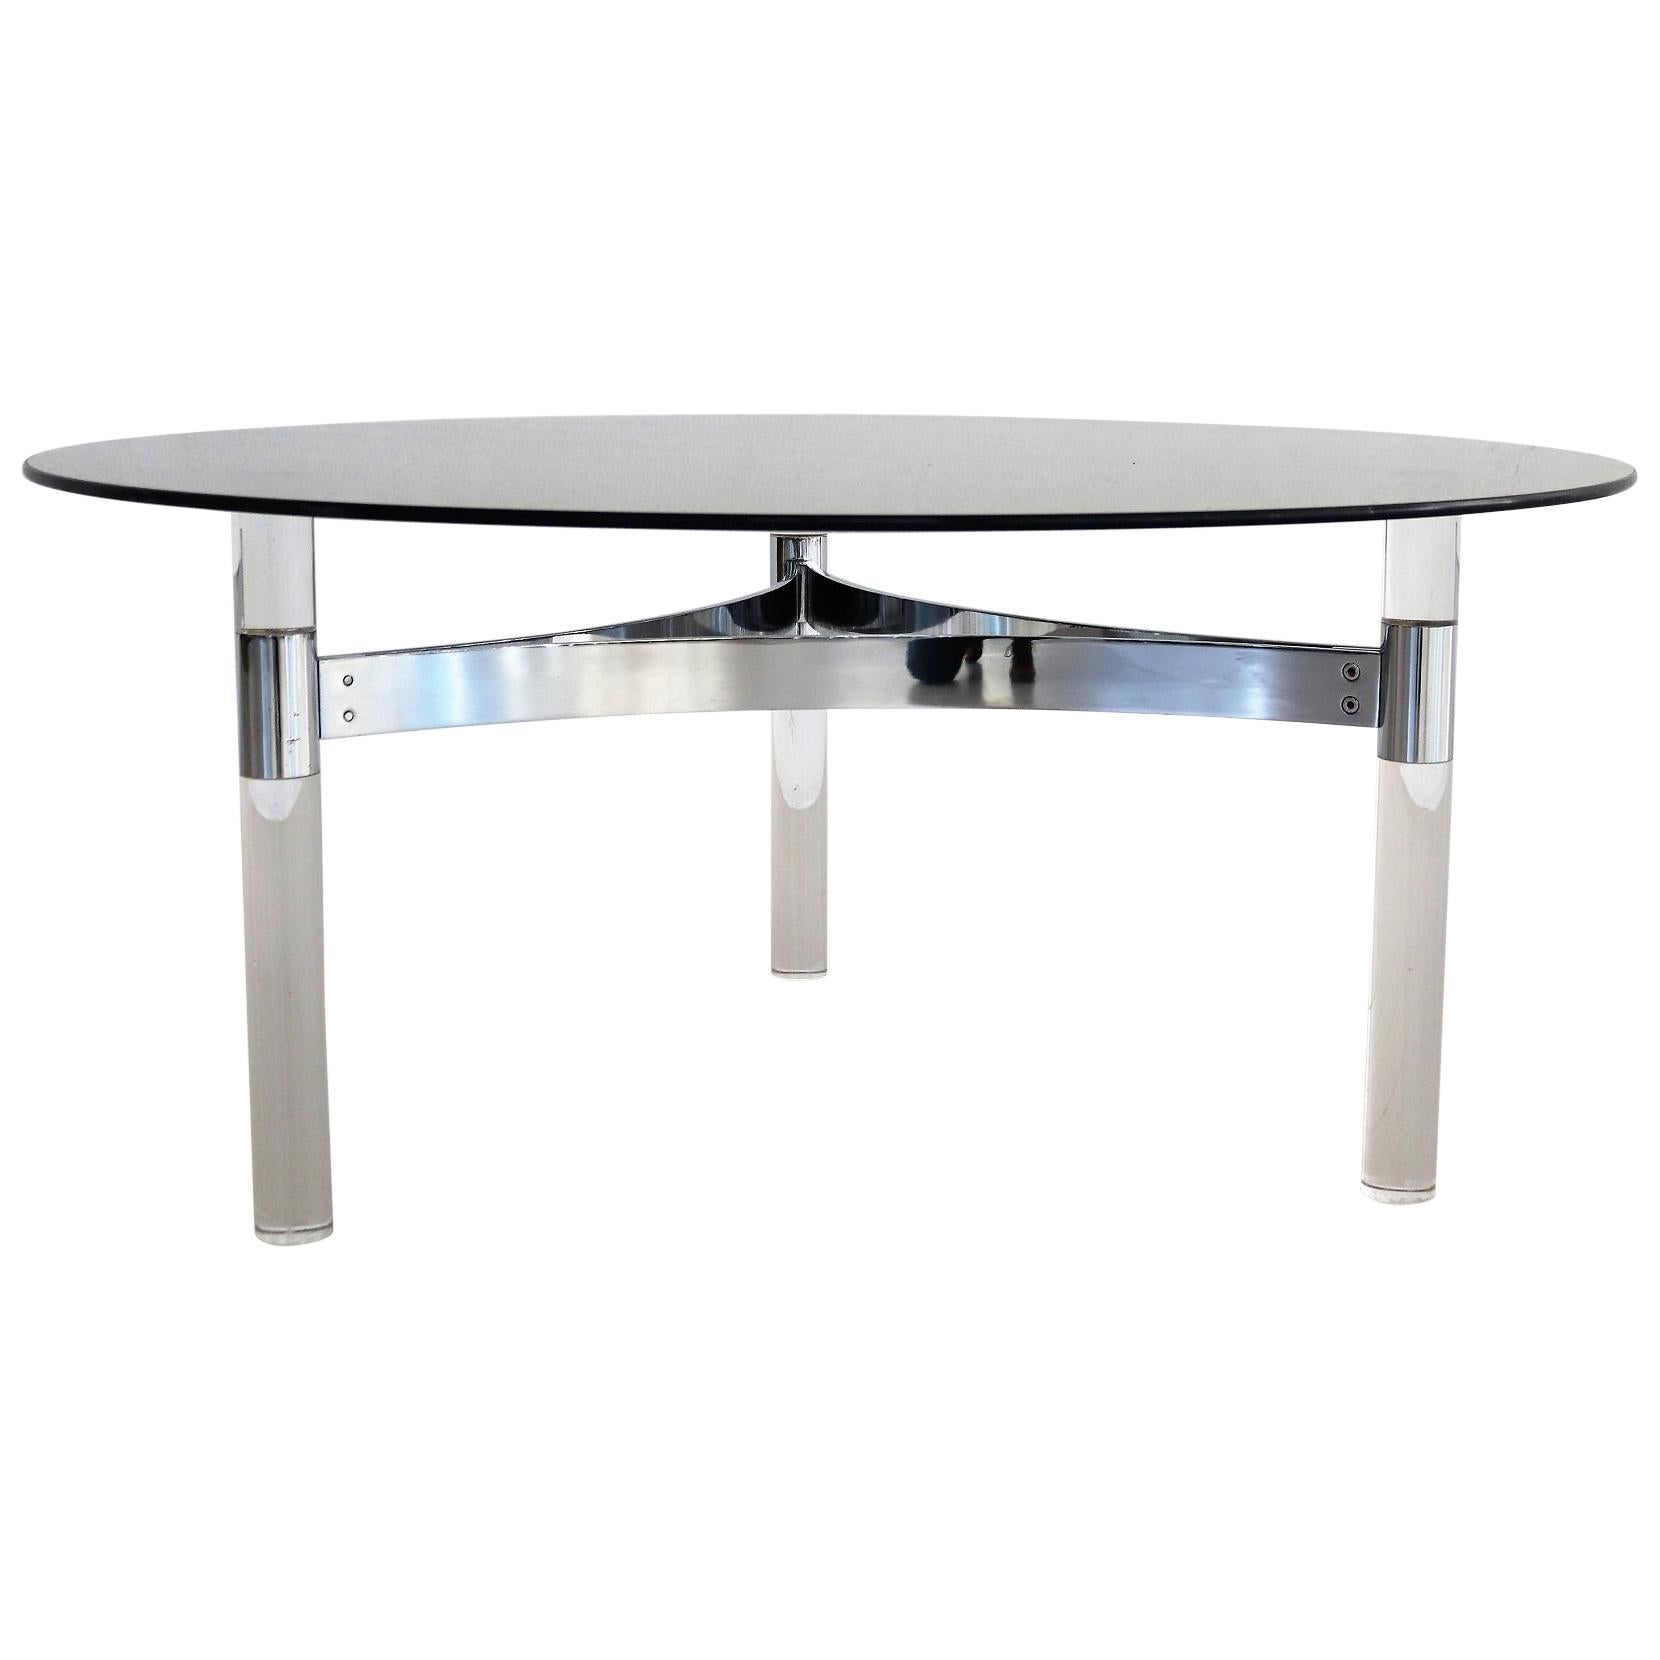 French Midcentury Smoke Glass Coffee Table on Lucite and Chrome Base, 1970s